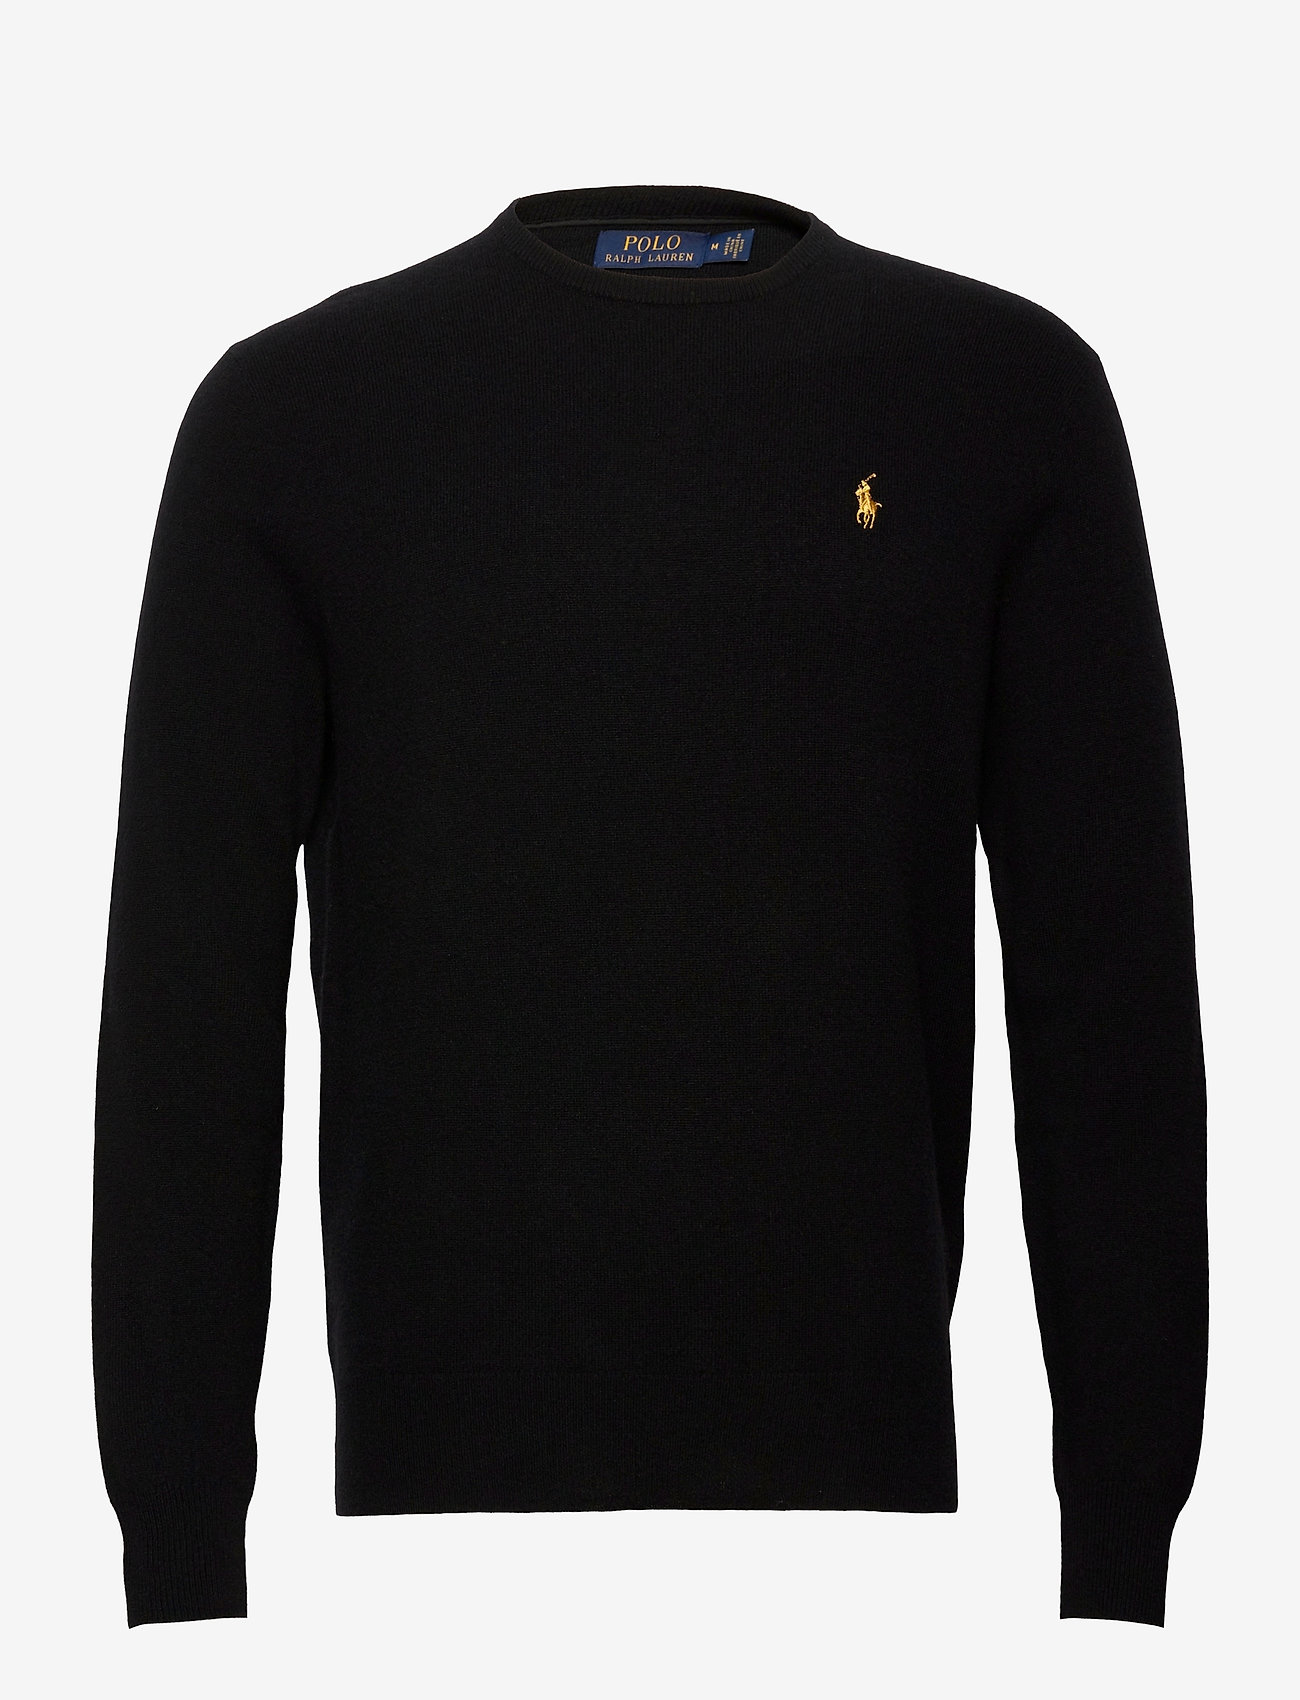 Polo Ralph Lauren - LORYELLE WOOL-LS CN PP - tops - black w/ gold pp - 0